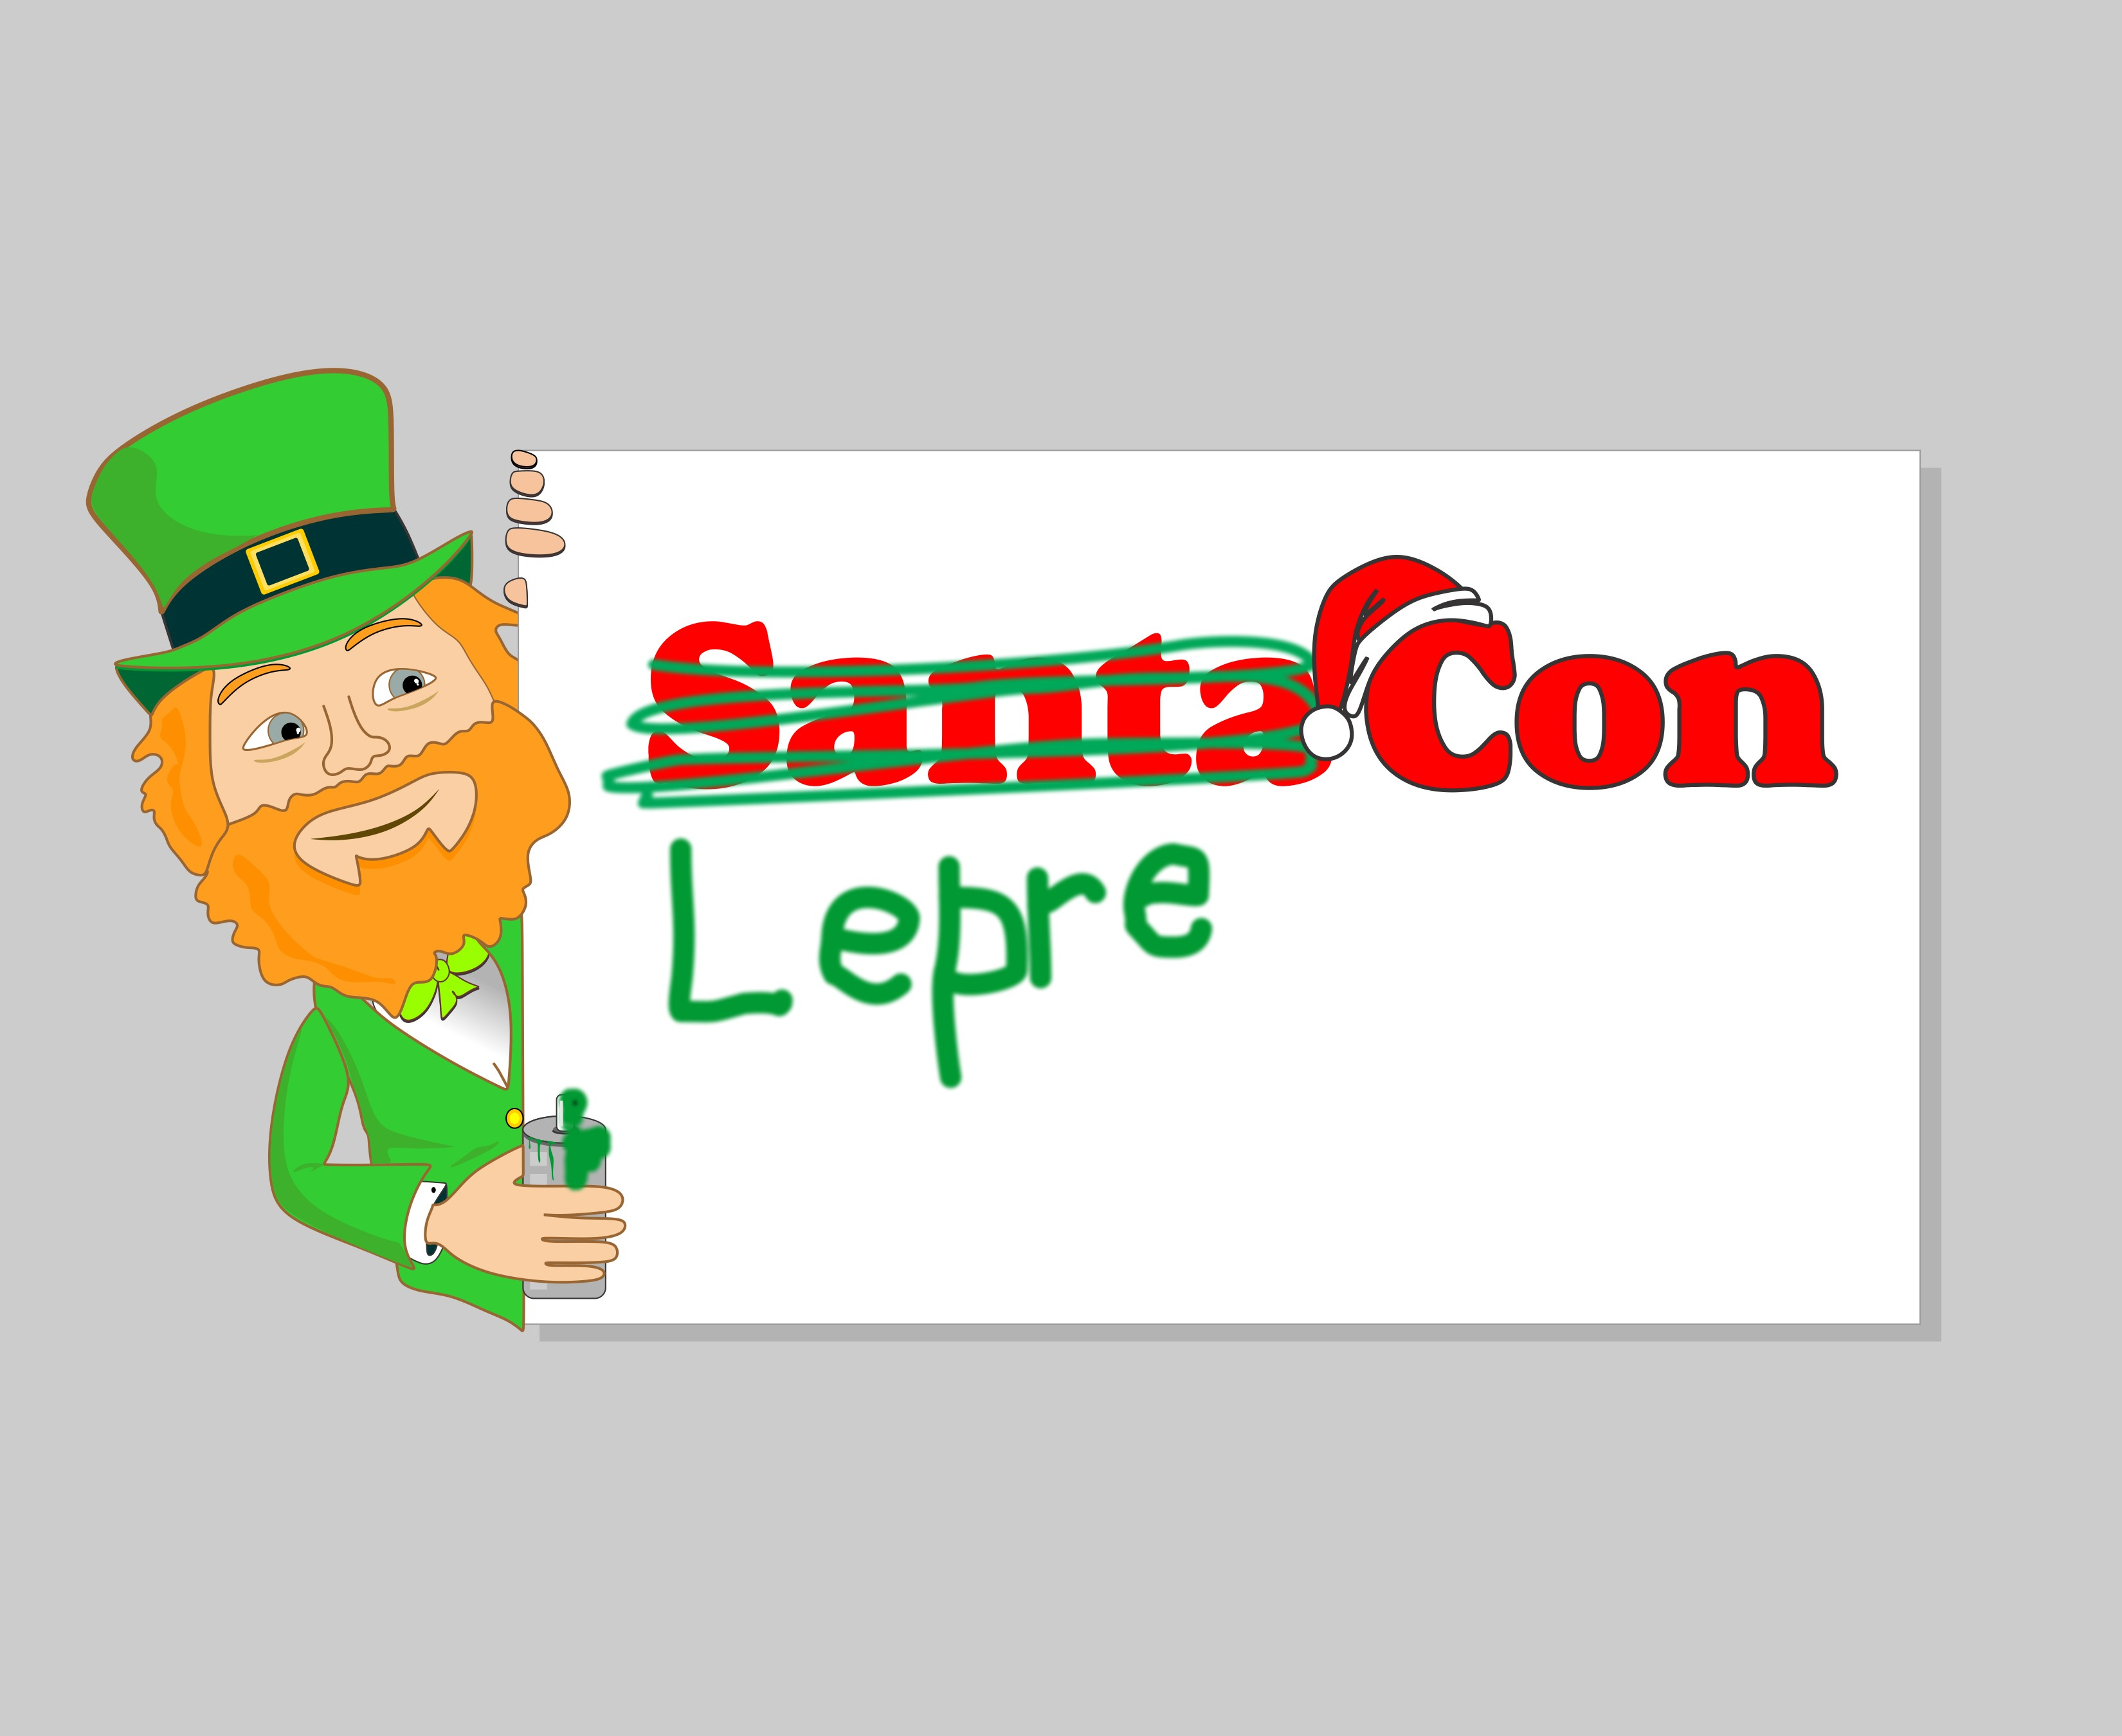 Logo Design by Mhon_Rose - Entry No. 49 in the Logo Design Contest FUN Logo Design for *LepreCon* St. Patrick's Event [WILL END EARLY JAN. 26].